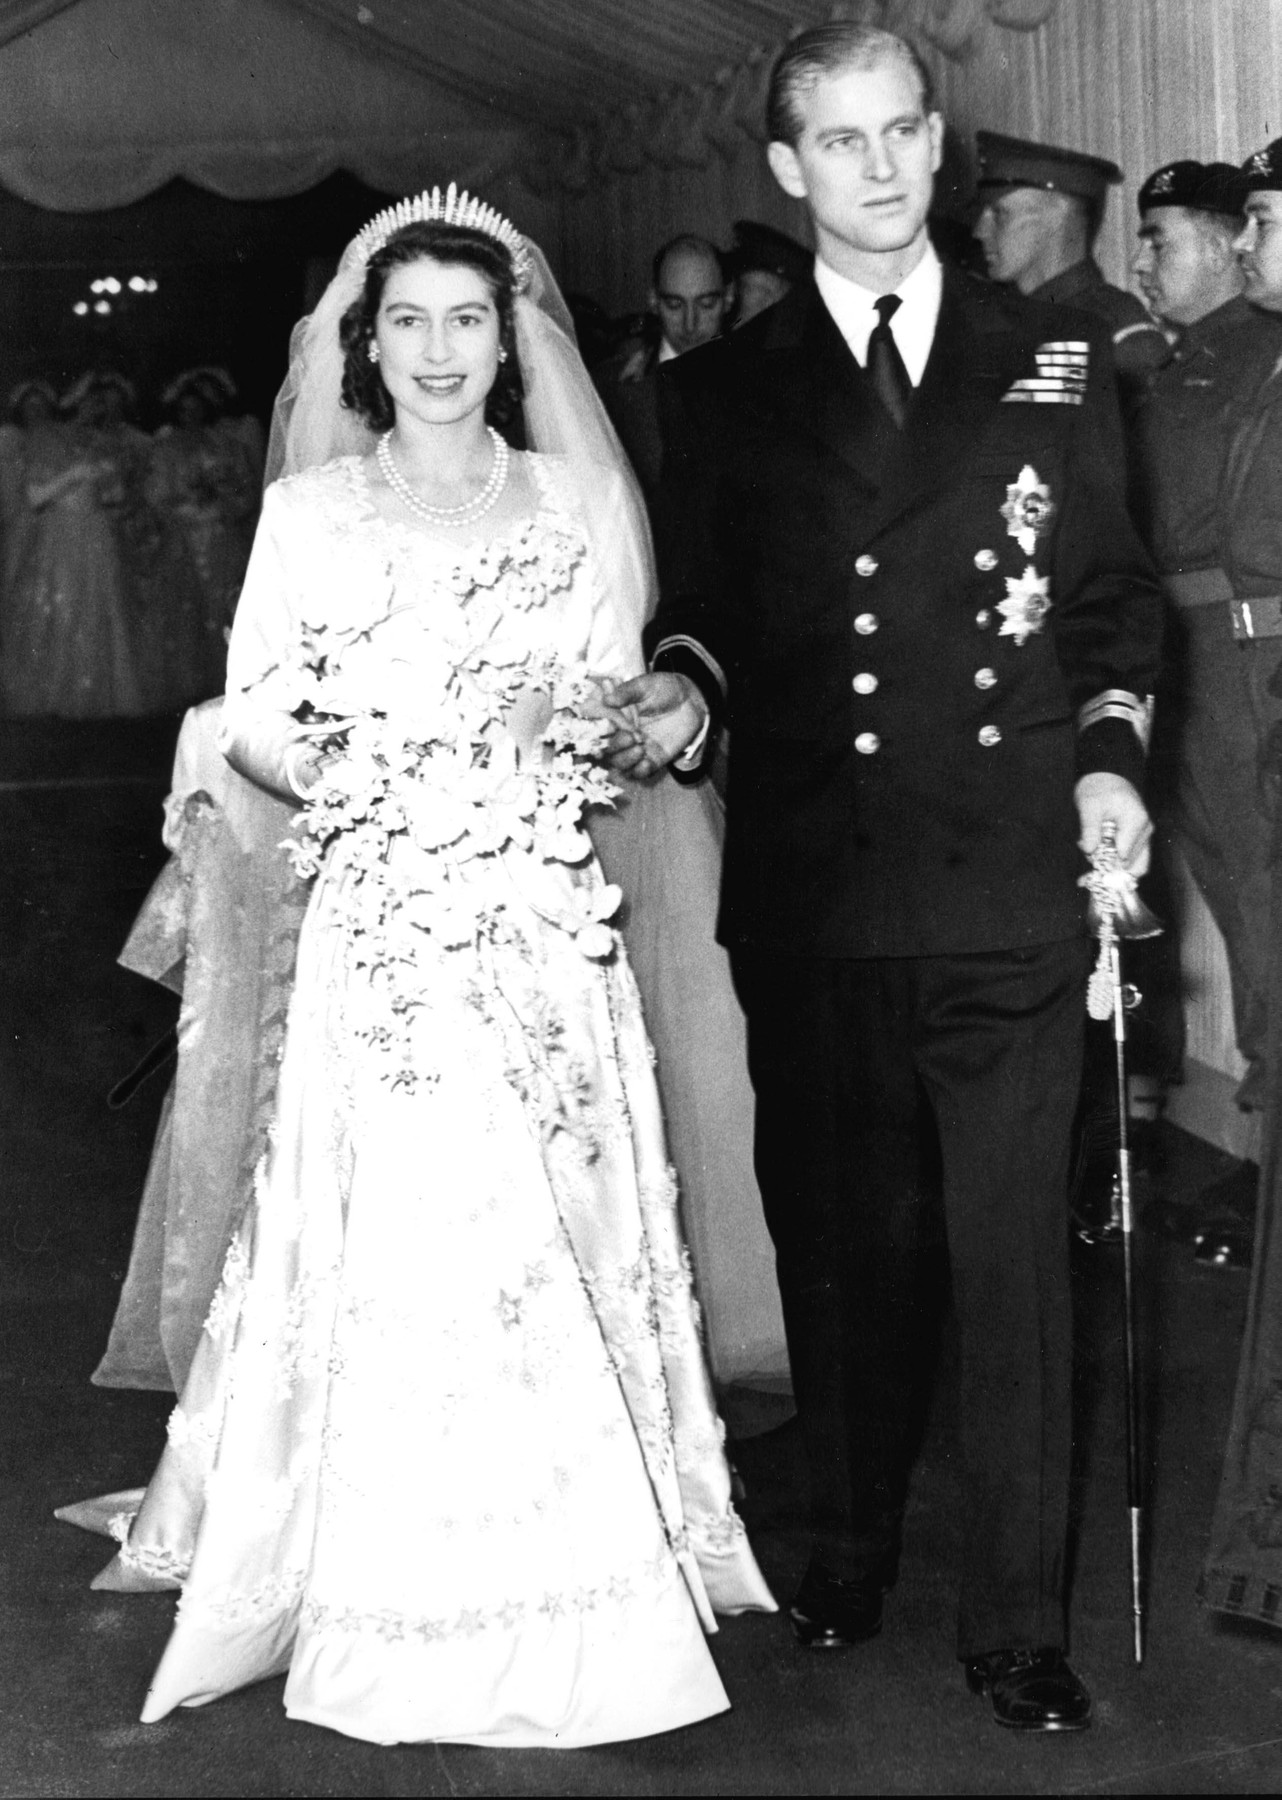 File photo dated 20/11/1947 of Queen Elizabeth II alongside the Duke of Edinburgh as they leave Westminster Abbey after their marriage ceremony. The Queen is wearing the same tiara that was worn by Princess Beatrice at her wedding to Edoardo Mapelli Mozzi on Friday.,Image: 544663423, License: Rights-managed, Restrictions: FILE PHOTO, Model Release: no, Credit line: PA Photos / PA Images / Profimedia